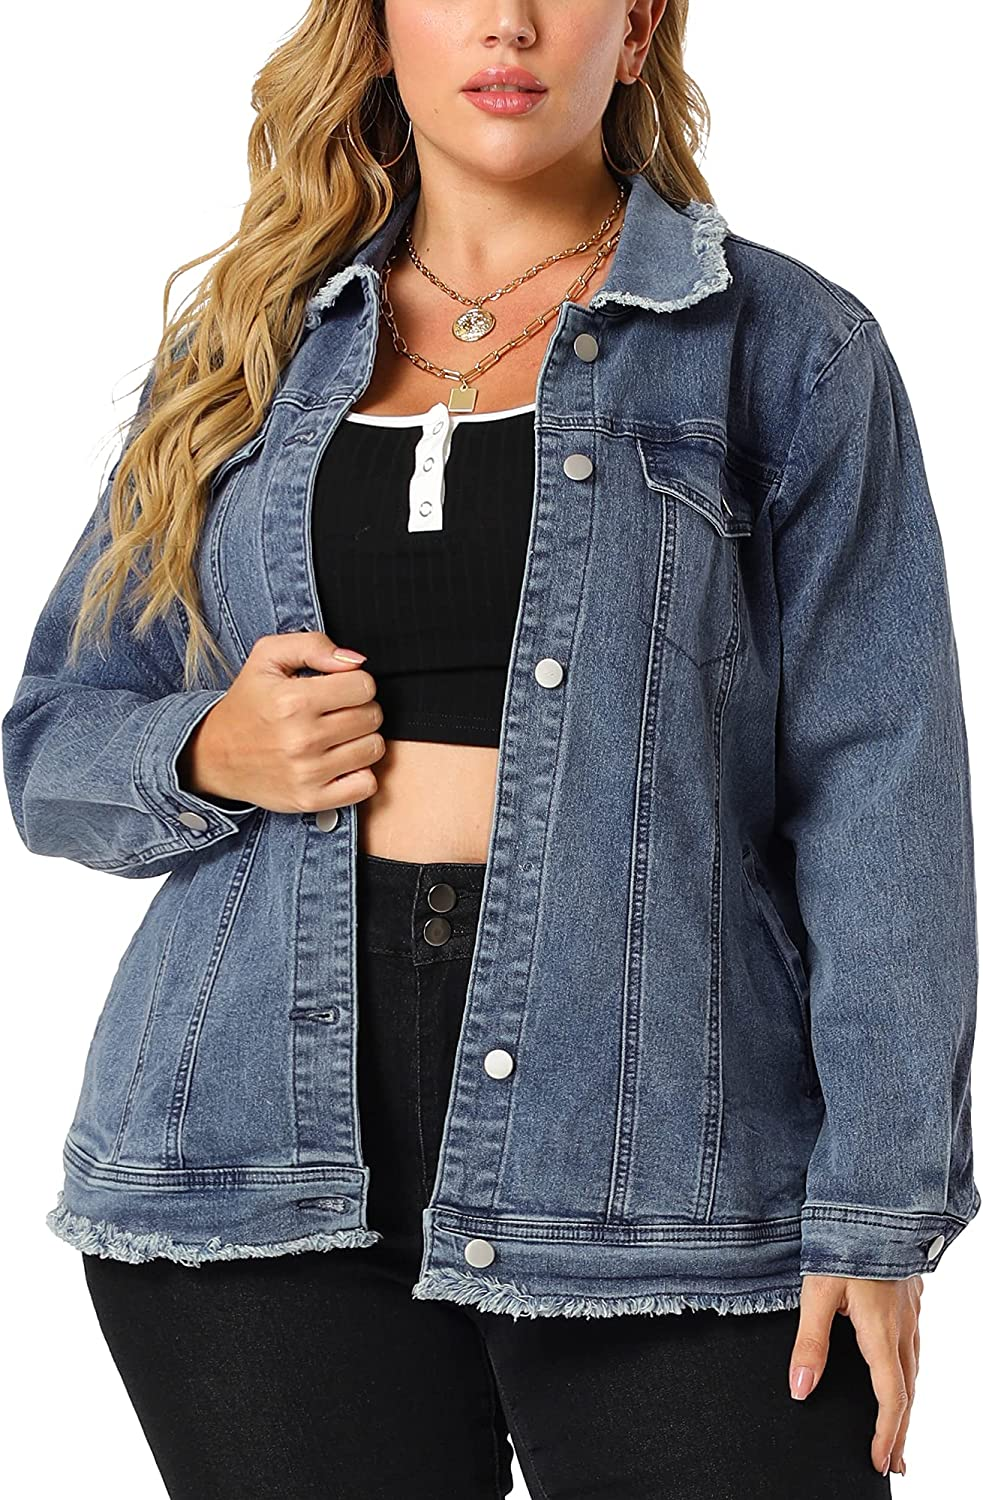 Agnes Orinda Plus Size Jeans Jackets for Women Raw Hem Frayed Collar Washed Distressed Jean Jackets with Pockets